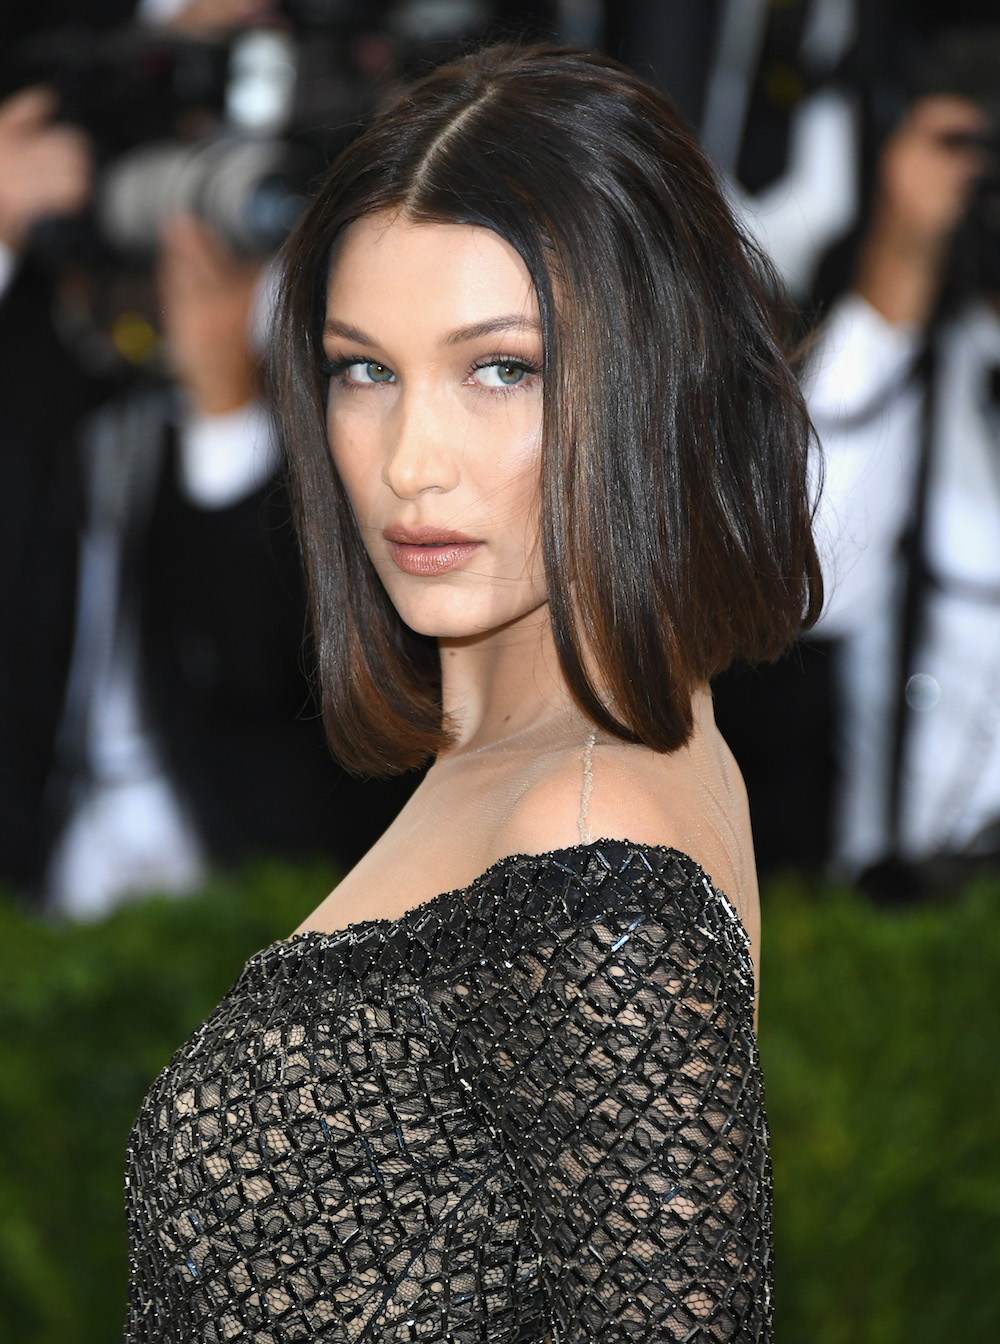 Bella Hadid just wore a gothic nude-illusion onesie to the Met Gala